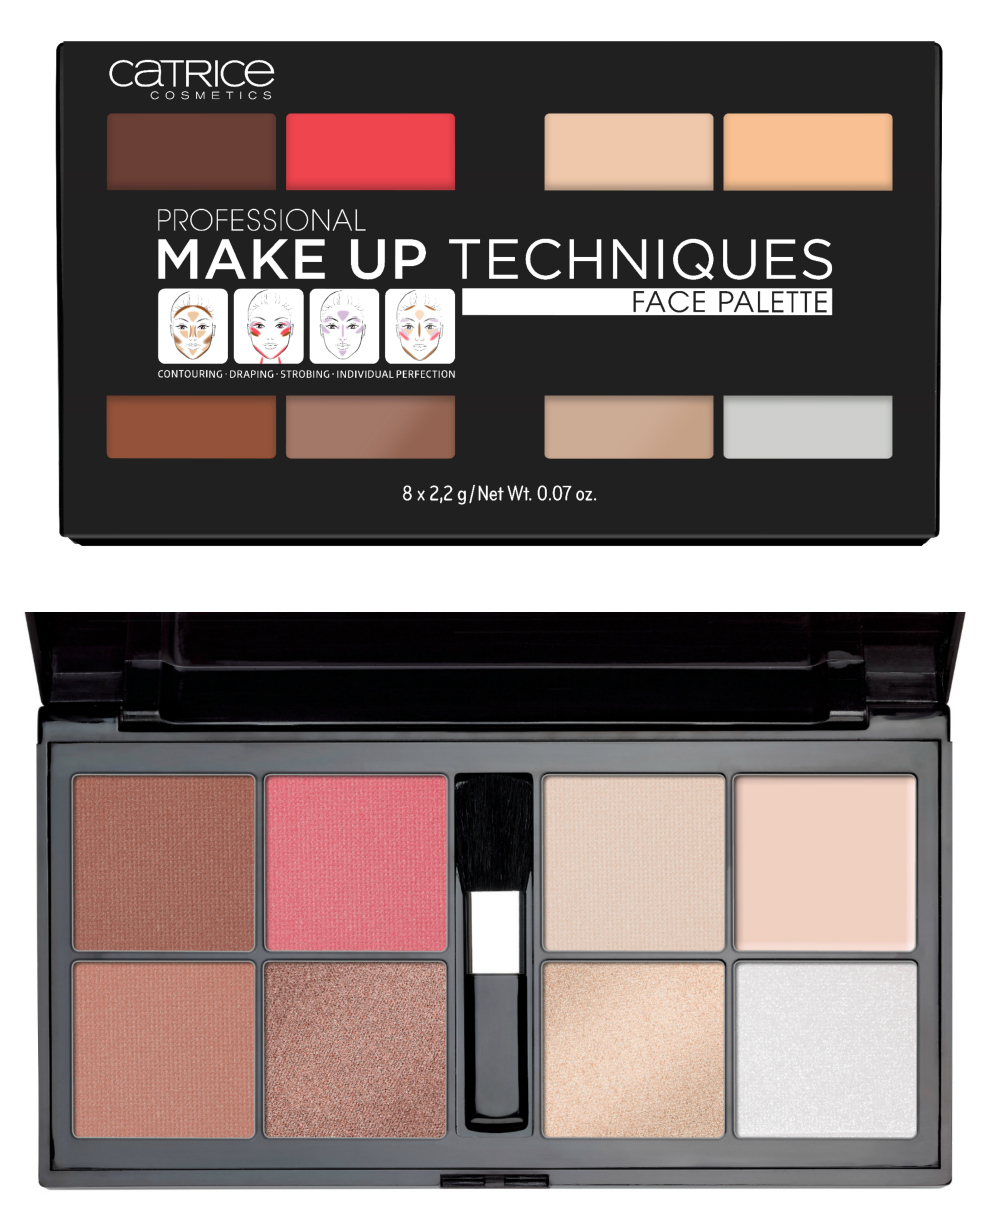 Catrice Neuheiten Herbst 2017 Professional Makeup Techniques Face Palette